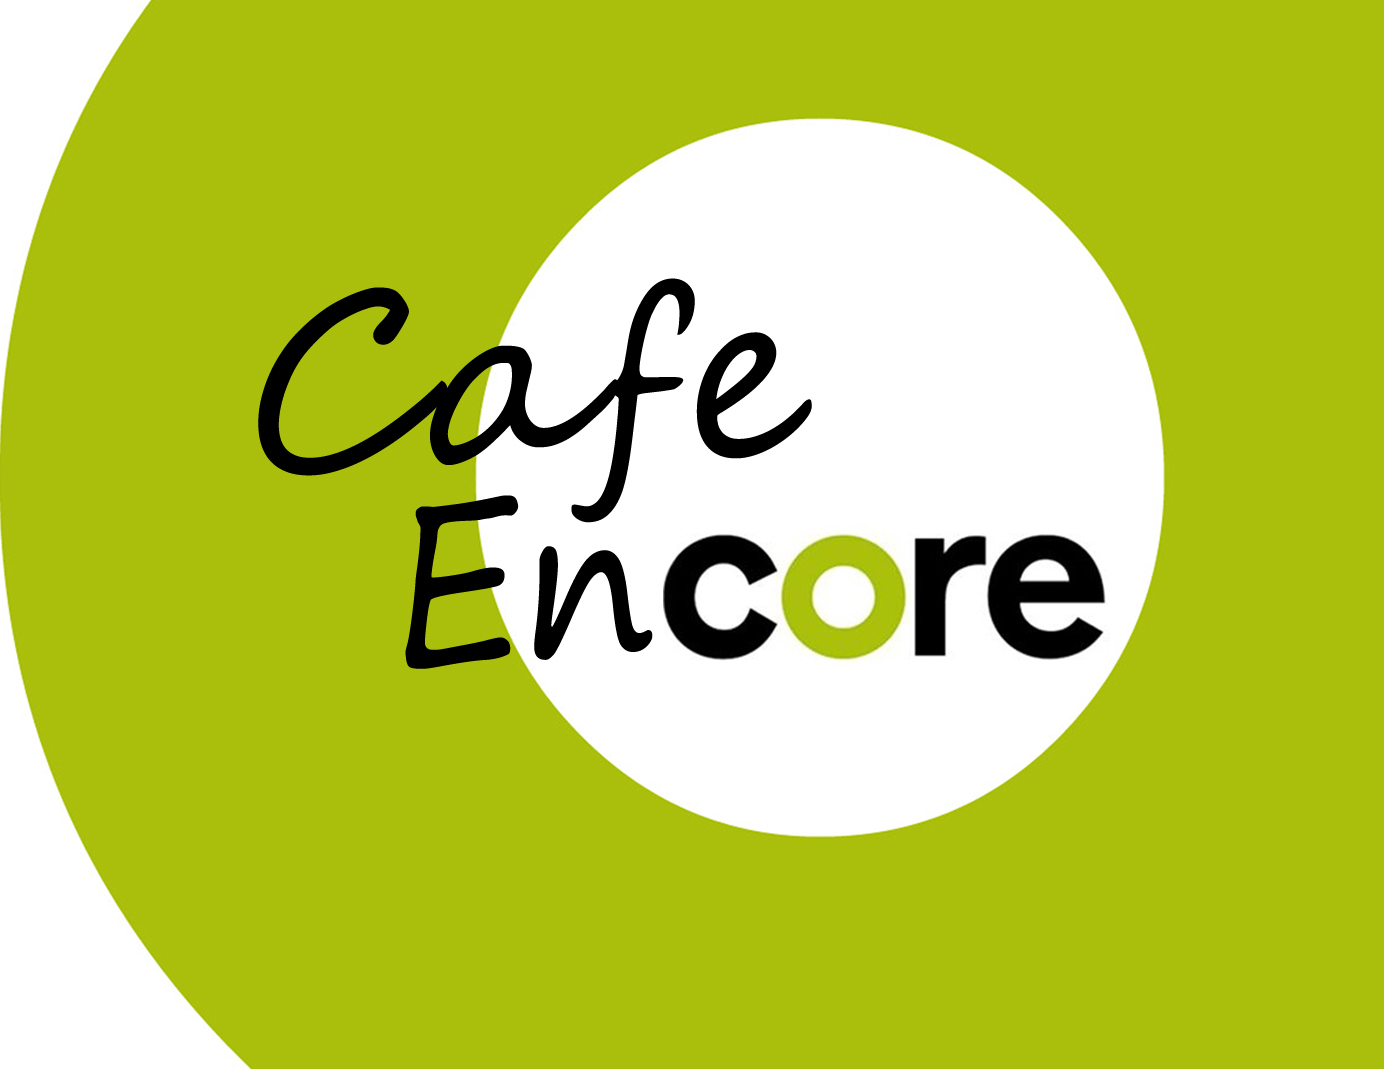 exciting job opportunity in taunton s new youth cafe stand we have a fantastic opportunity for 2 youth cafe team leaders if you want to be a part of something valuable to local youth and a job that is exciting